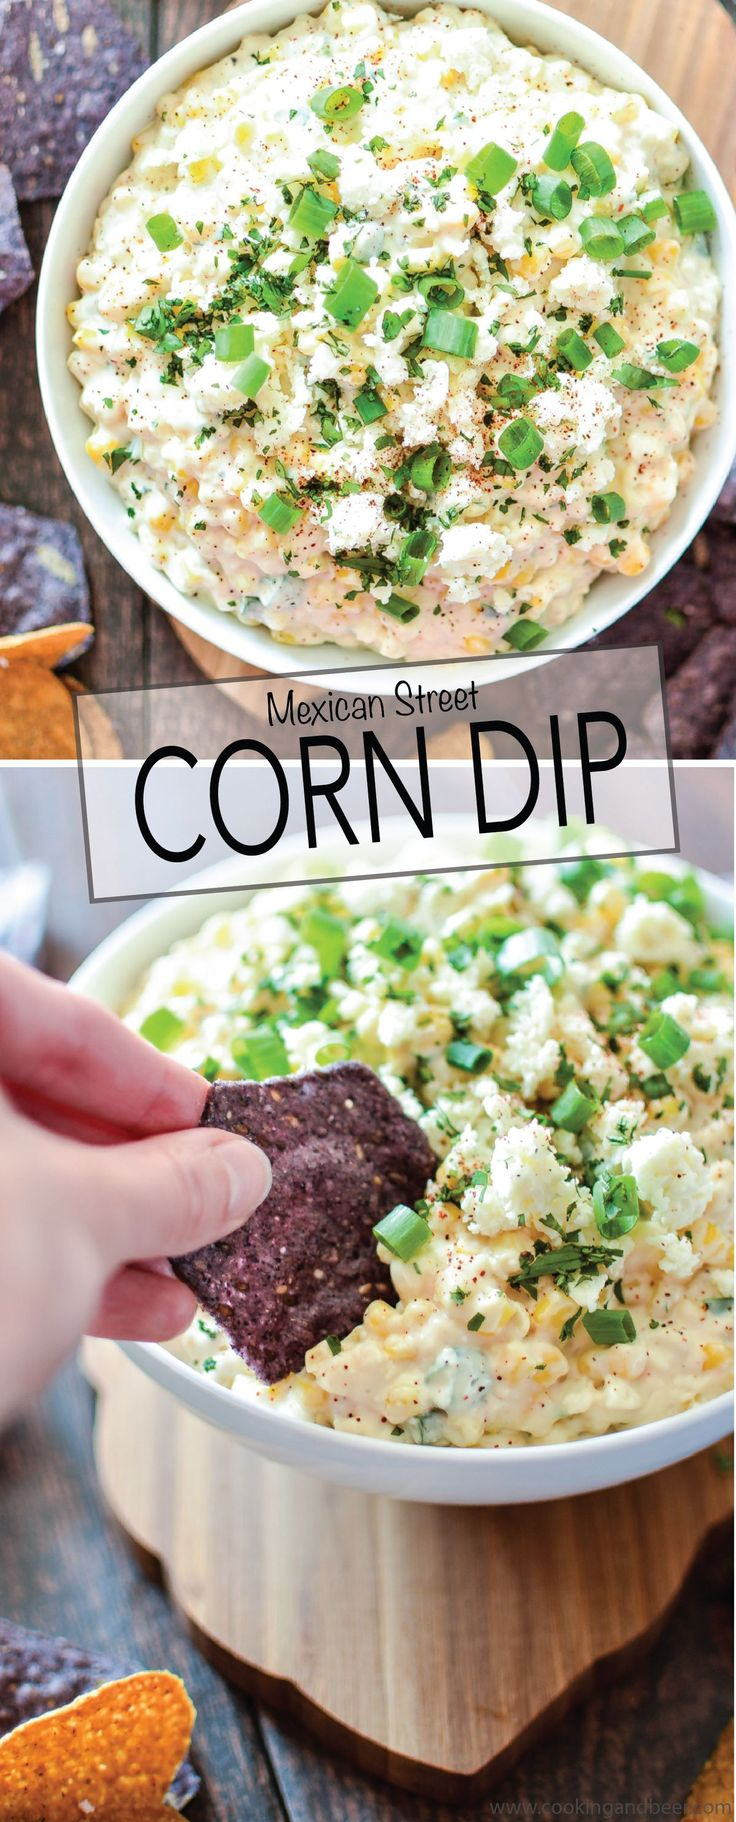 Mexican Street Corn Dip is the perfect appetizer to serve at your Cinco de Mayo party! #cincodemayo #corn #mexicanfood #streetcorn #recipe